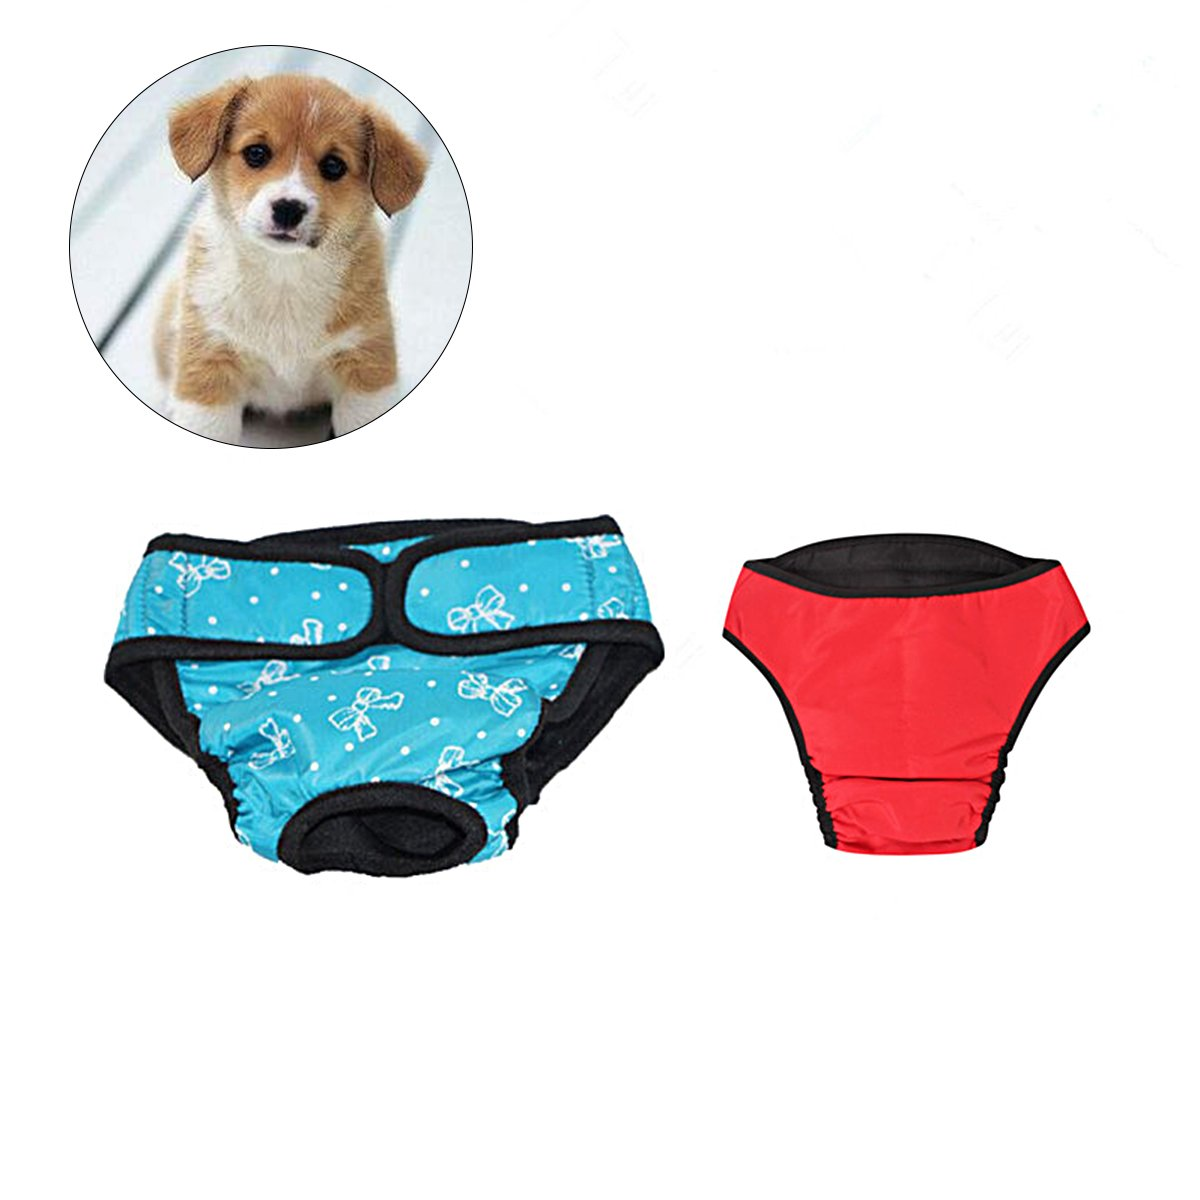 ... 2 PCS Pet Dog Puppy Pañal Higiénico fisiológico Pants Female Dog Shorts Bragas Menstruación Ropa interior Tamaño XS: Amazon.es: Productos para mascotas